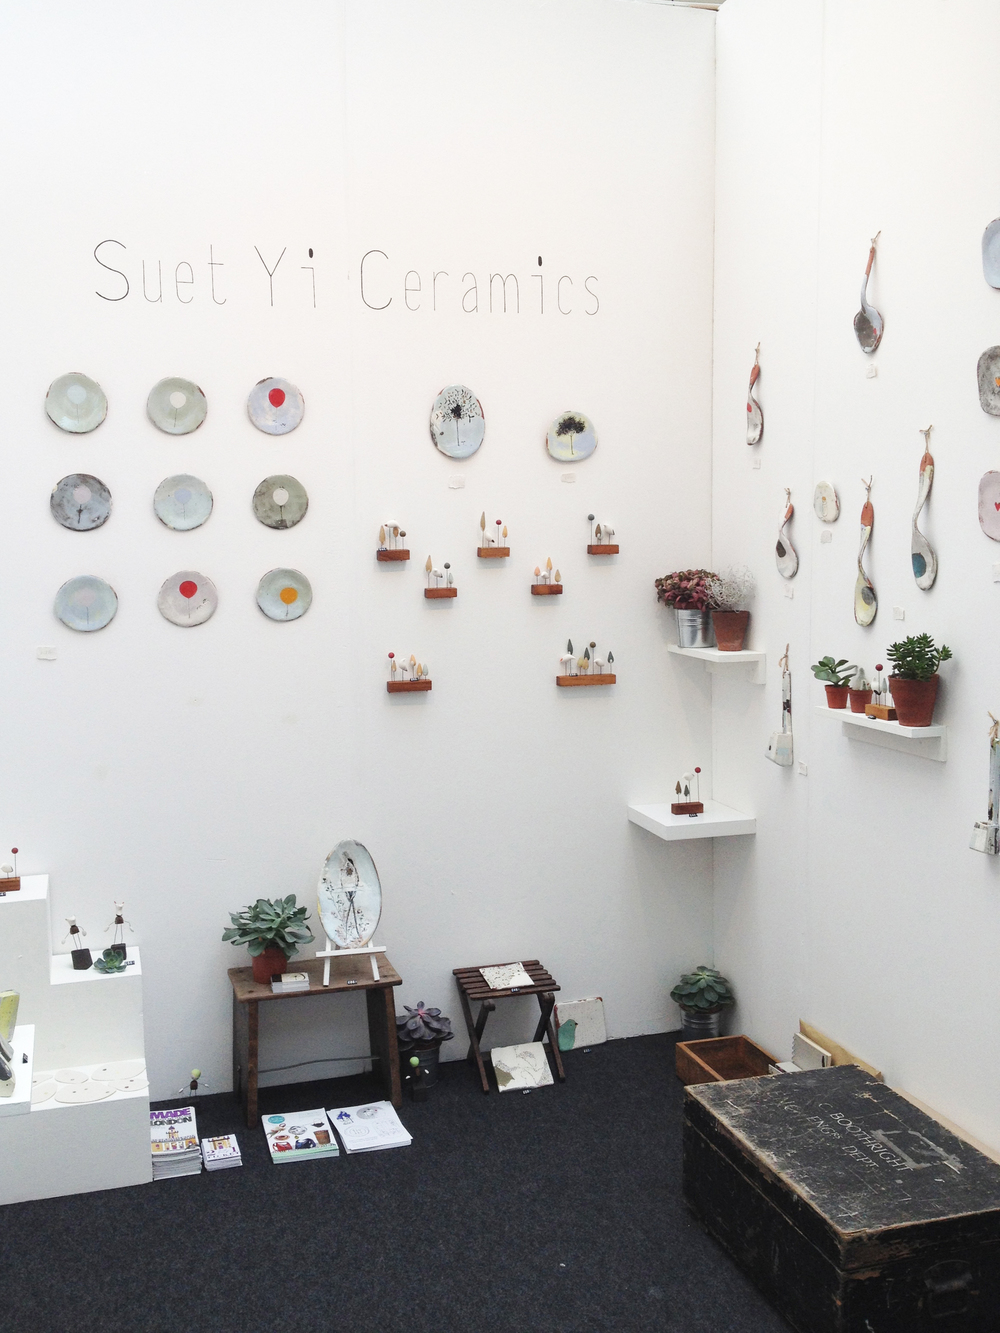 Suet Yi Ceramics Suet Yi graduated in the year above me and her colourful ceramics have always fascinated me... I'm developing quite a collection!